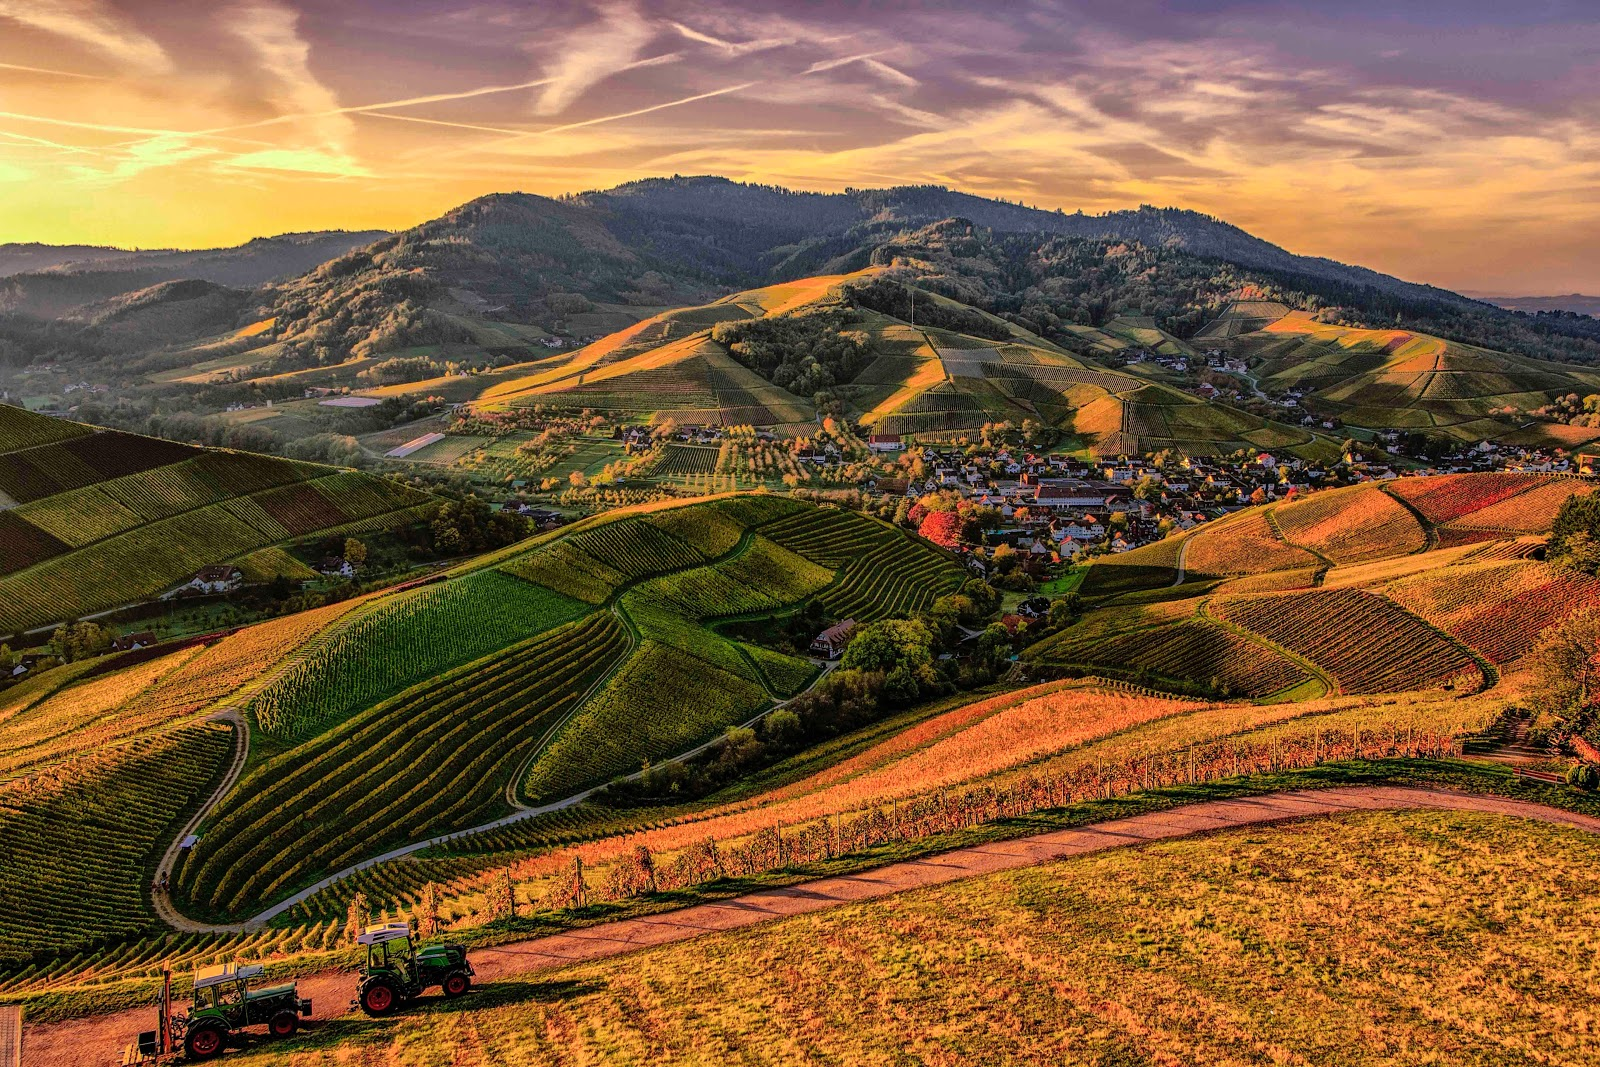 4k Wallpaper Agriculture Brown and Green Mountain View Photo